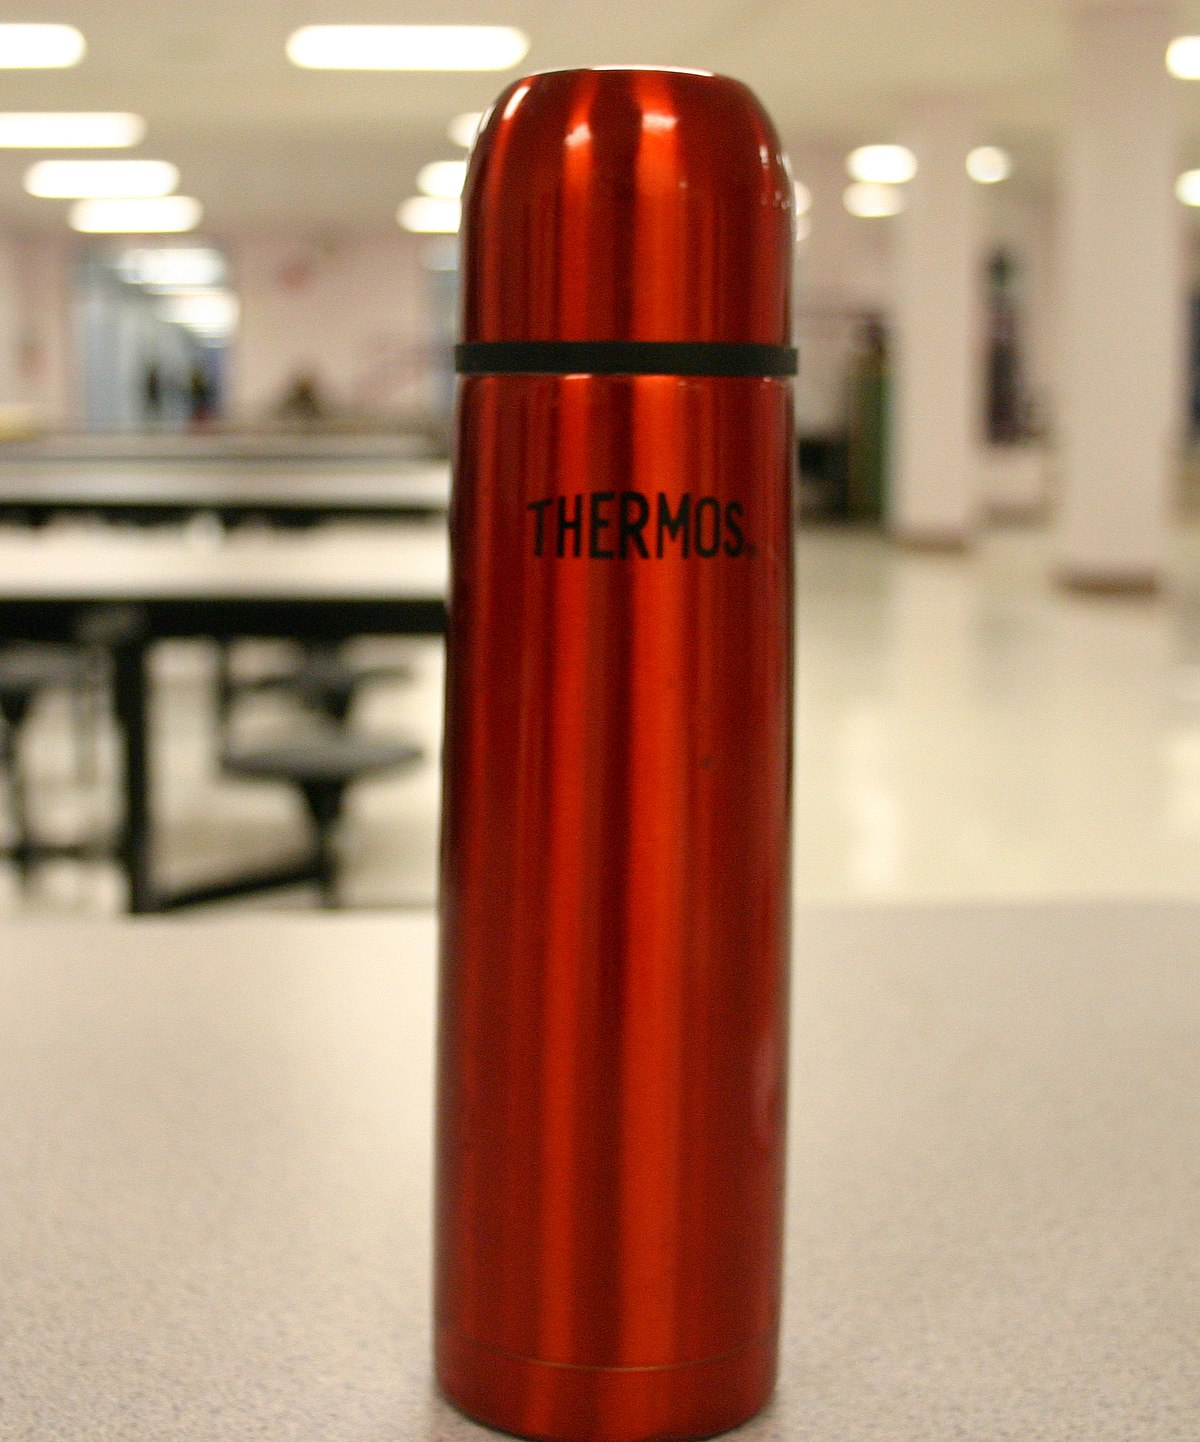 Thermos Thermoskanne Thermoskanne Wiktionary